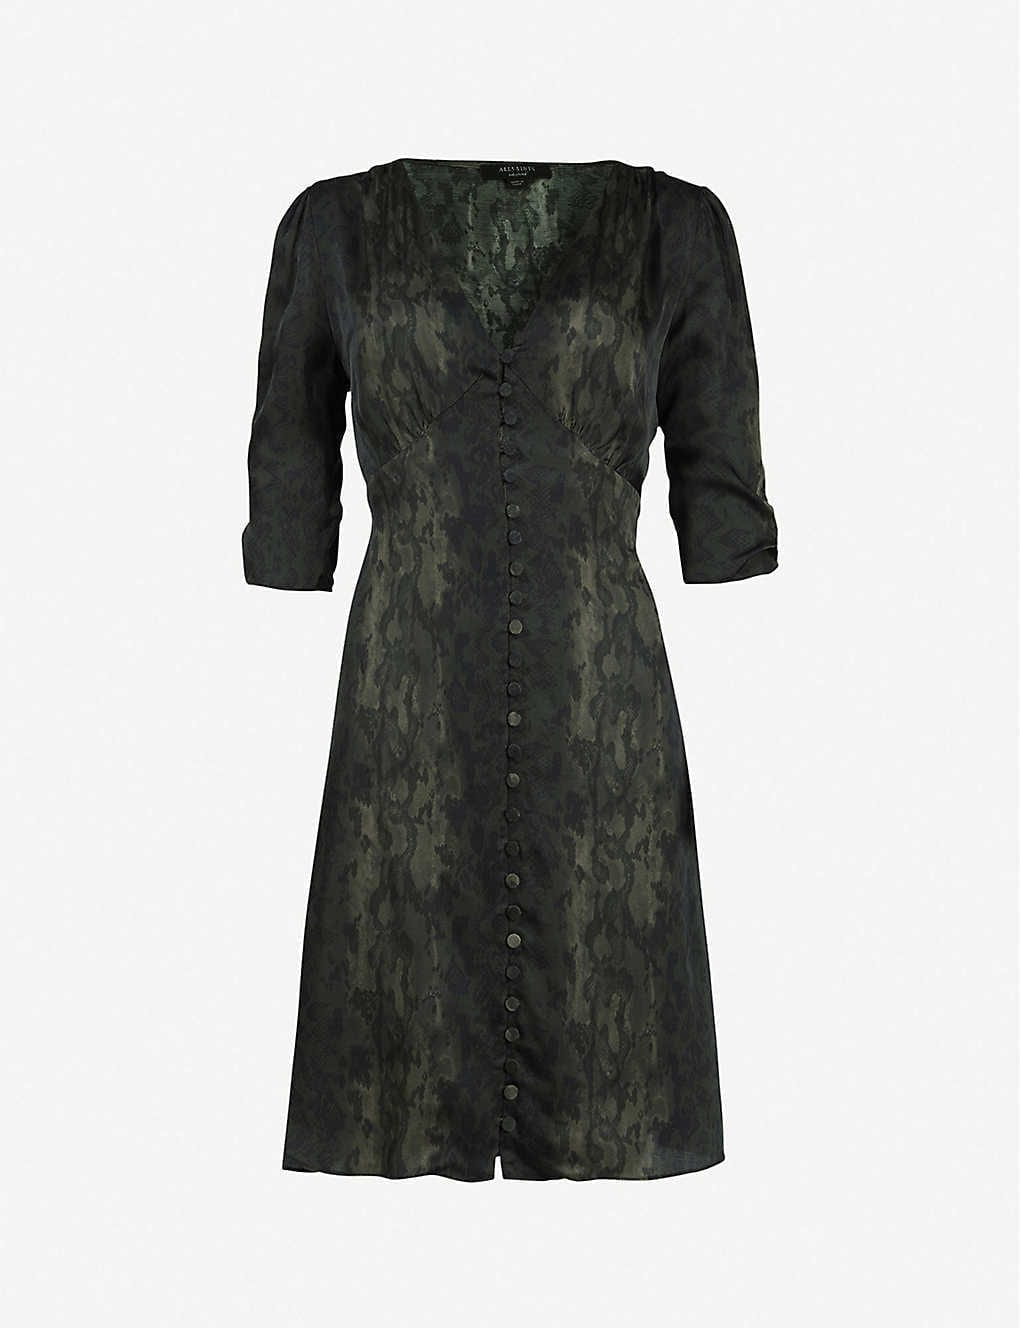 ALLSAINTS Kota Snakeskin-Print Crepe Mini Dress